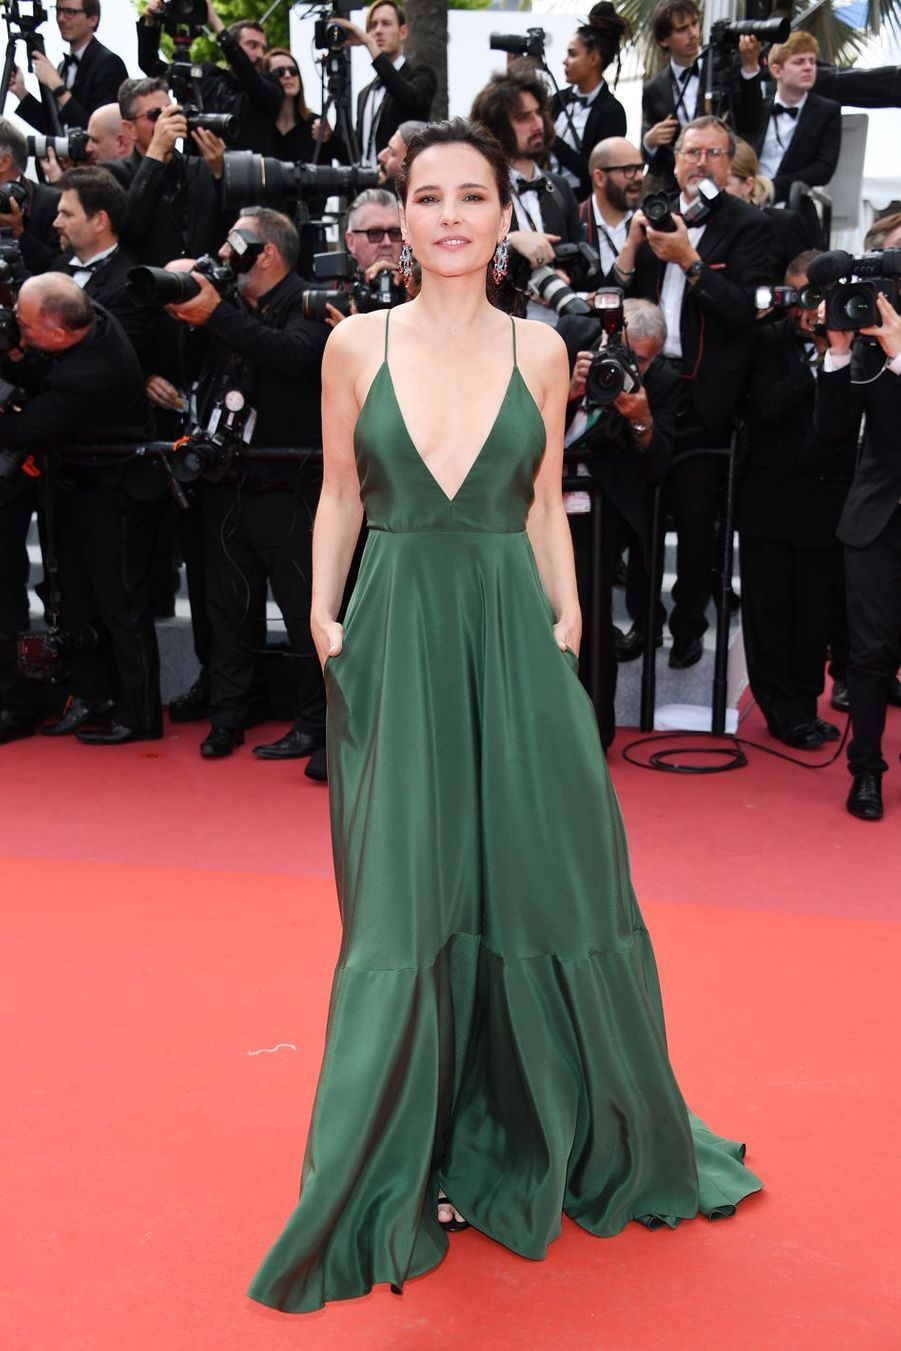 Virginie Ledoyen lors de la montée des marches du film «Once Upon A Time In Hollywood» à Cannes le 21 mai 2019